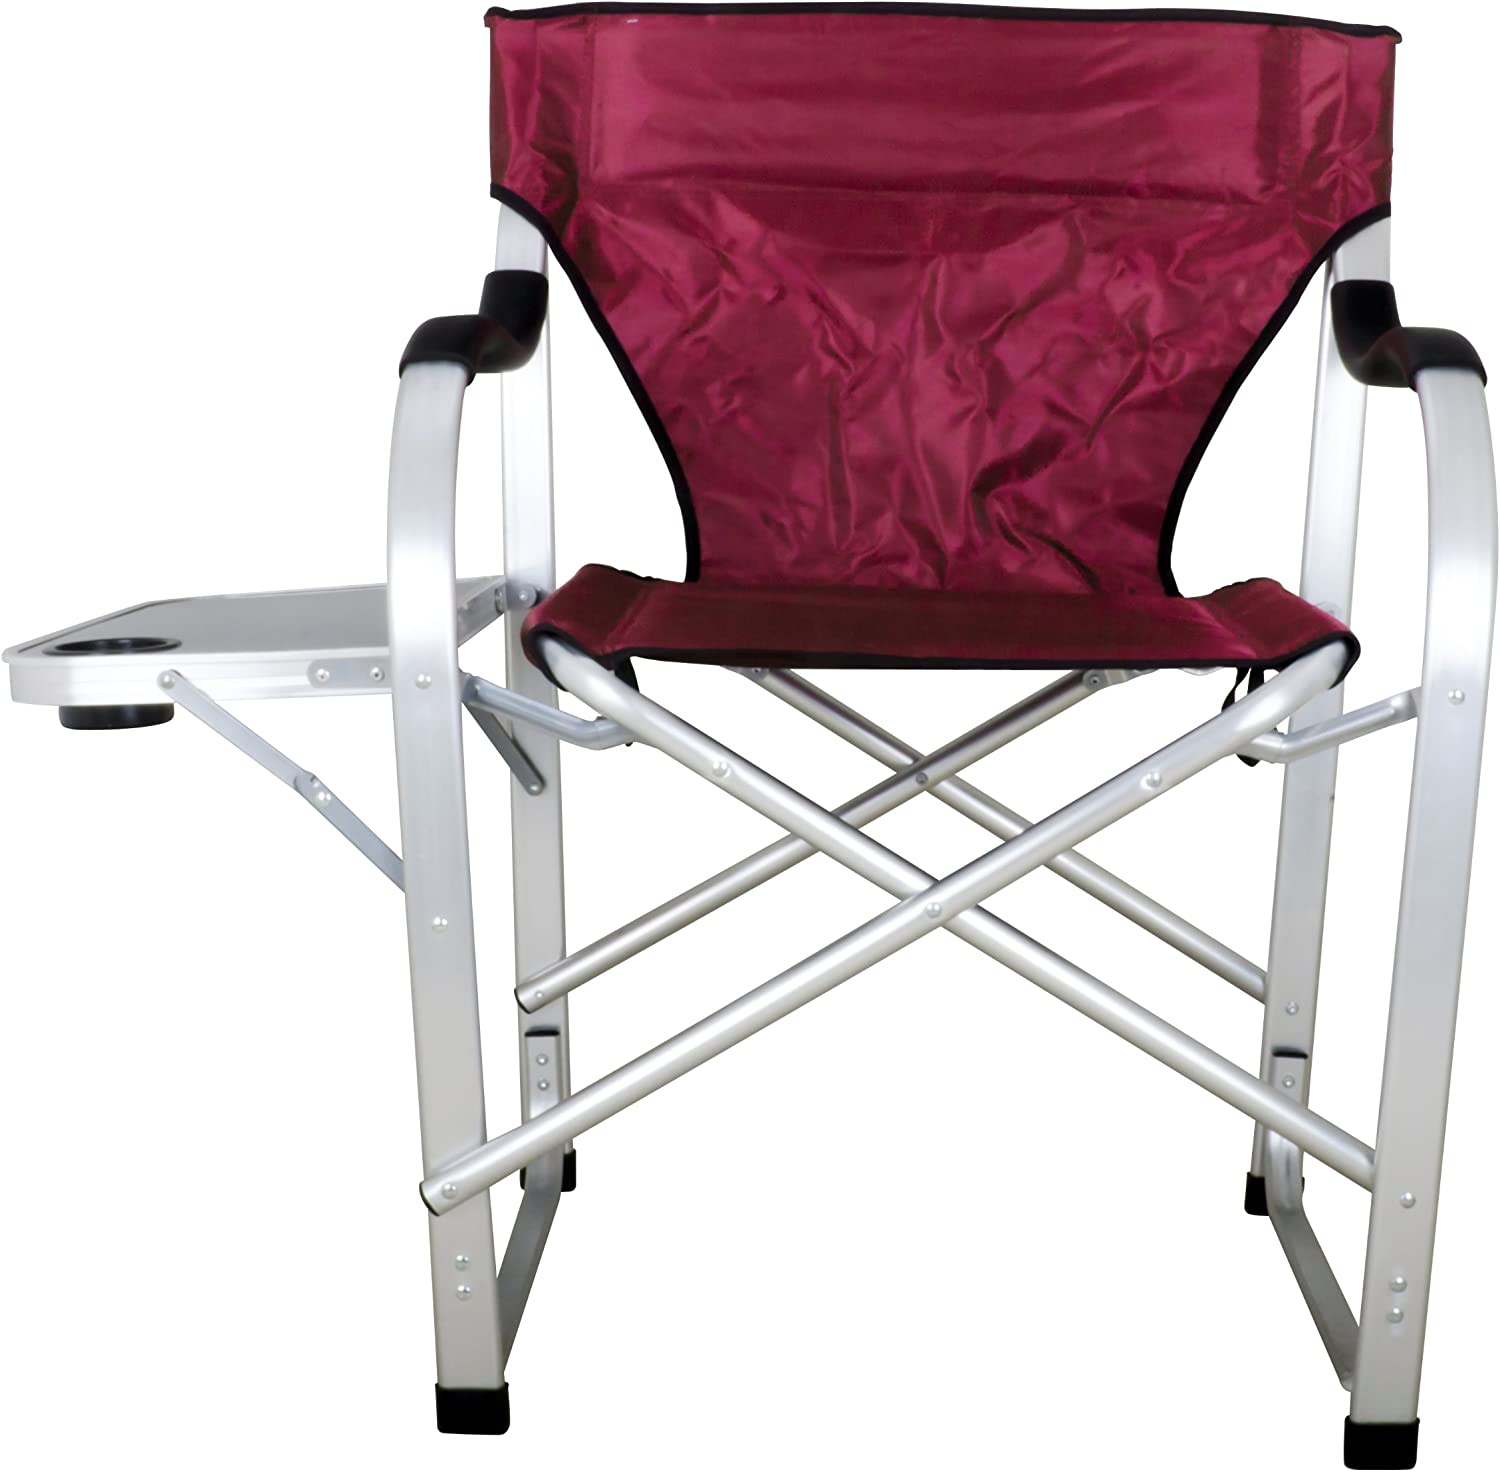 Stylish Camping Heavy Duty Folding Camping Director Chair w Side table Burgundy SL1215